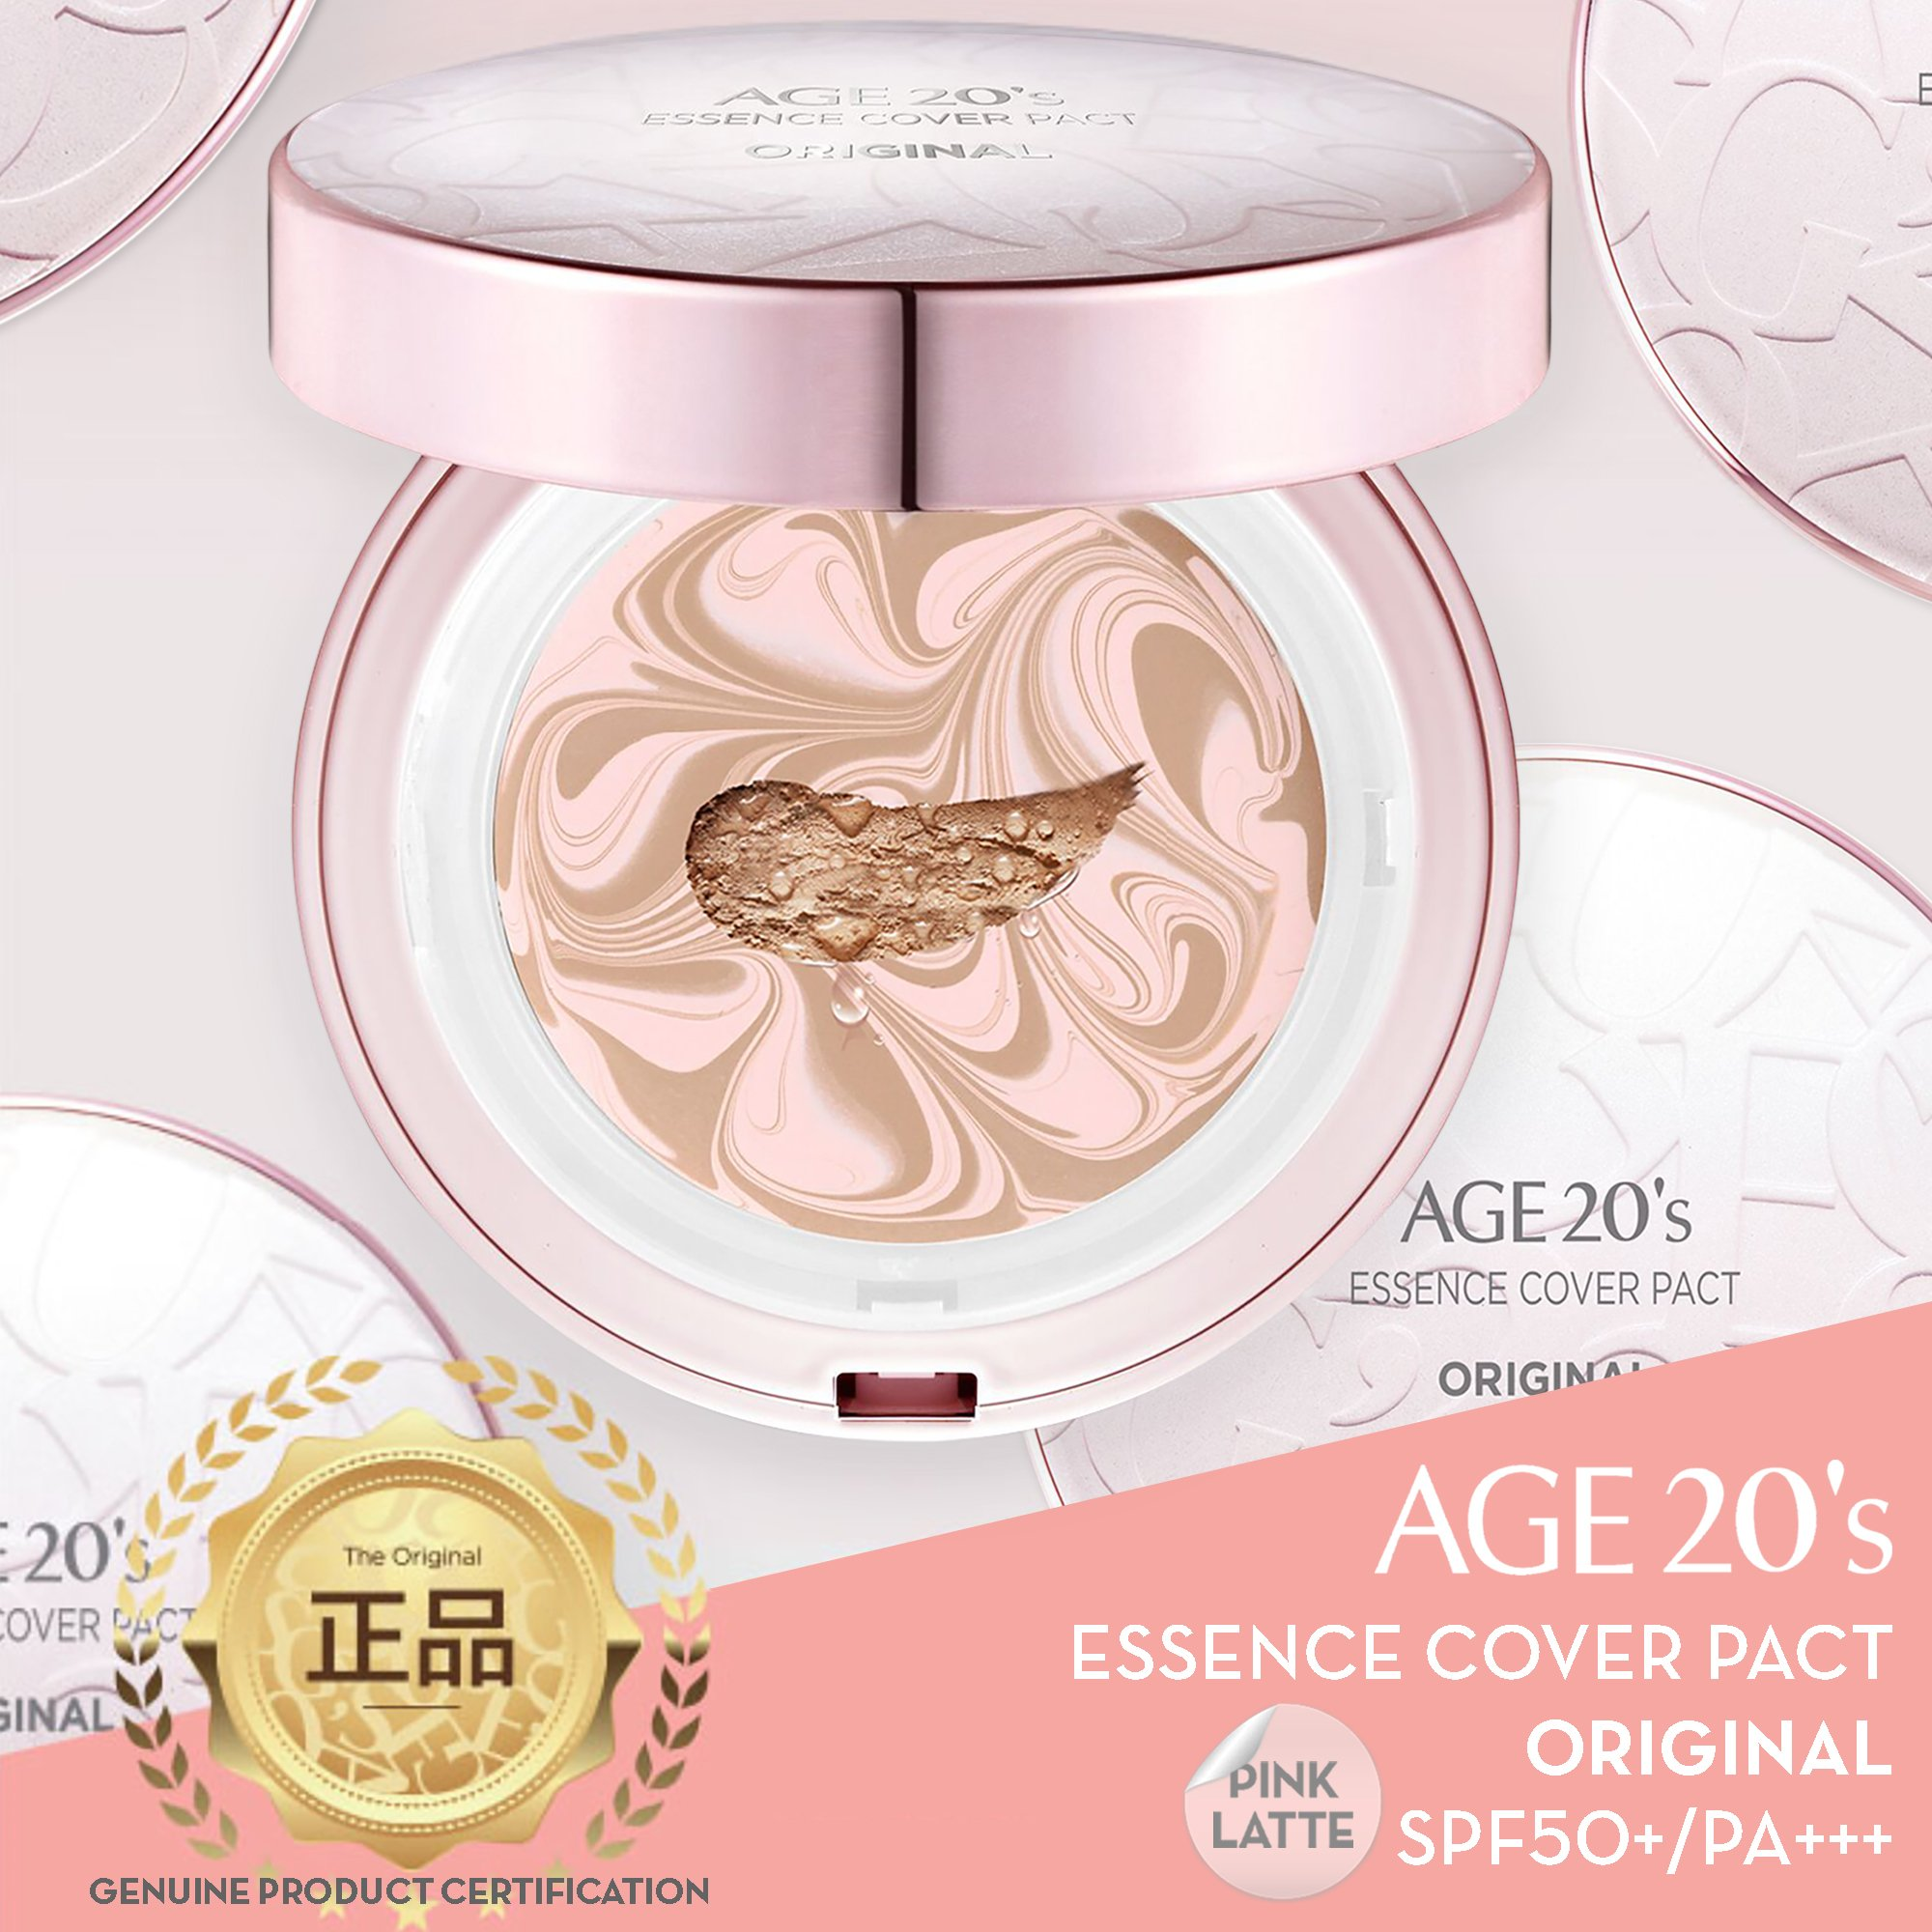 [ AGE TWENTIES ] Age 20's Compact Foundation Premium Makeup, 1 Extra Refill - Pink Latte Essence Cover Pact SPF50+ (Made in Korea) - Pink/Natural Beige (Color 23)